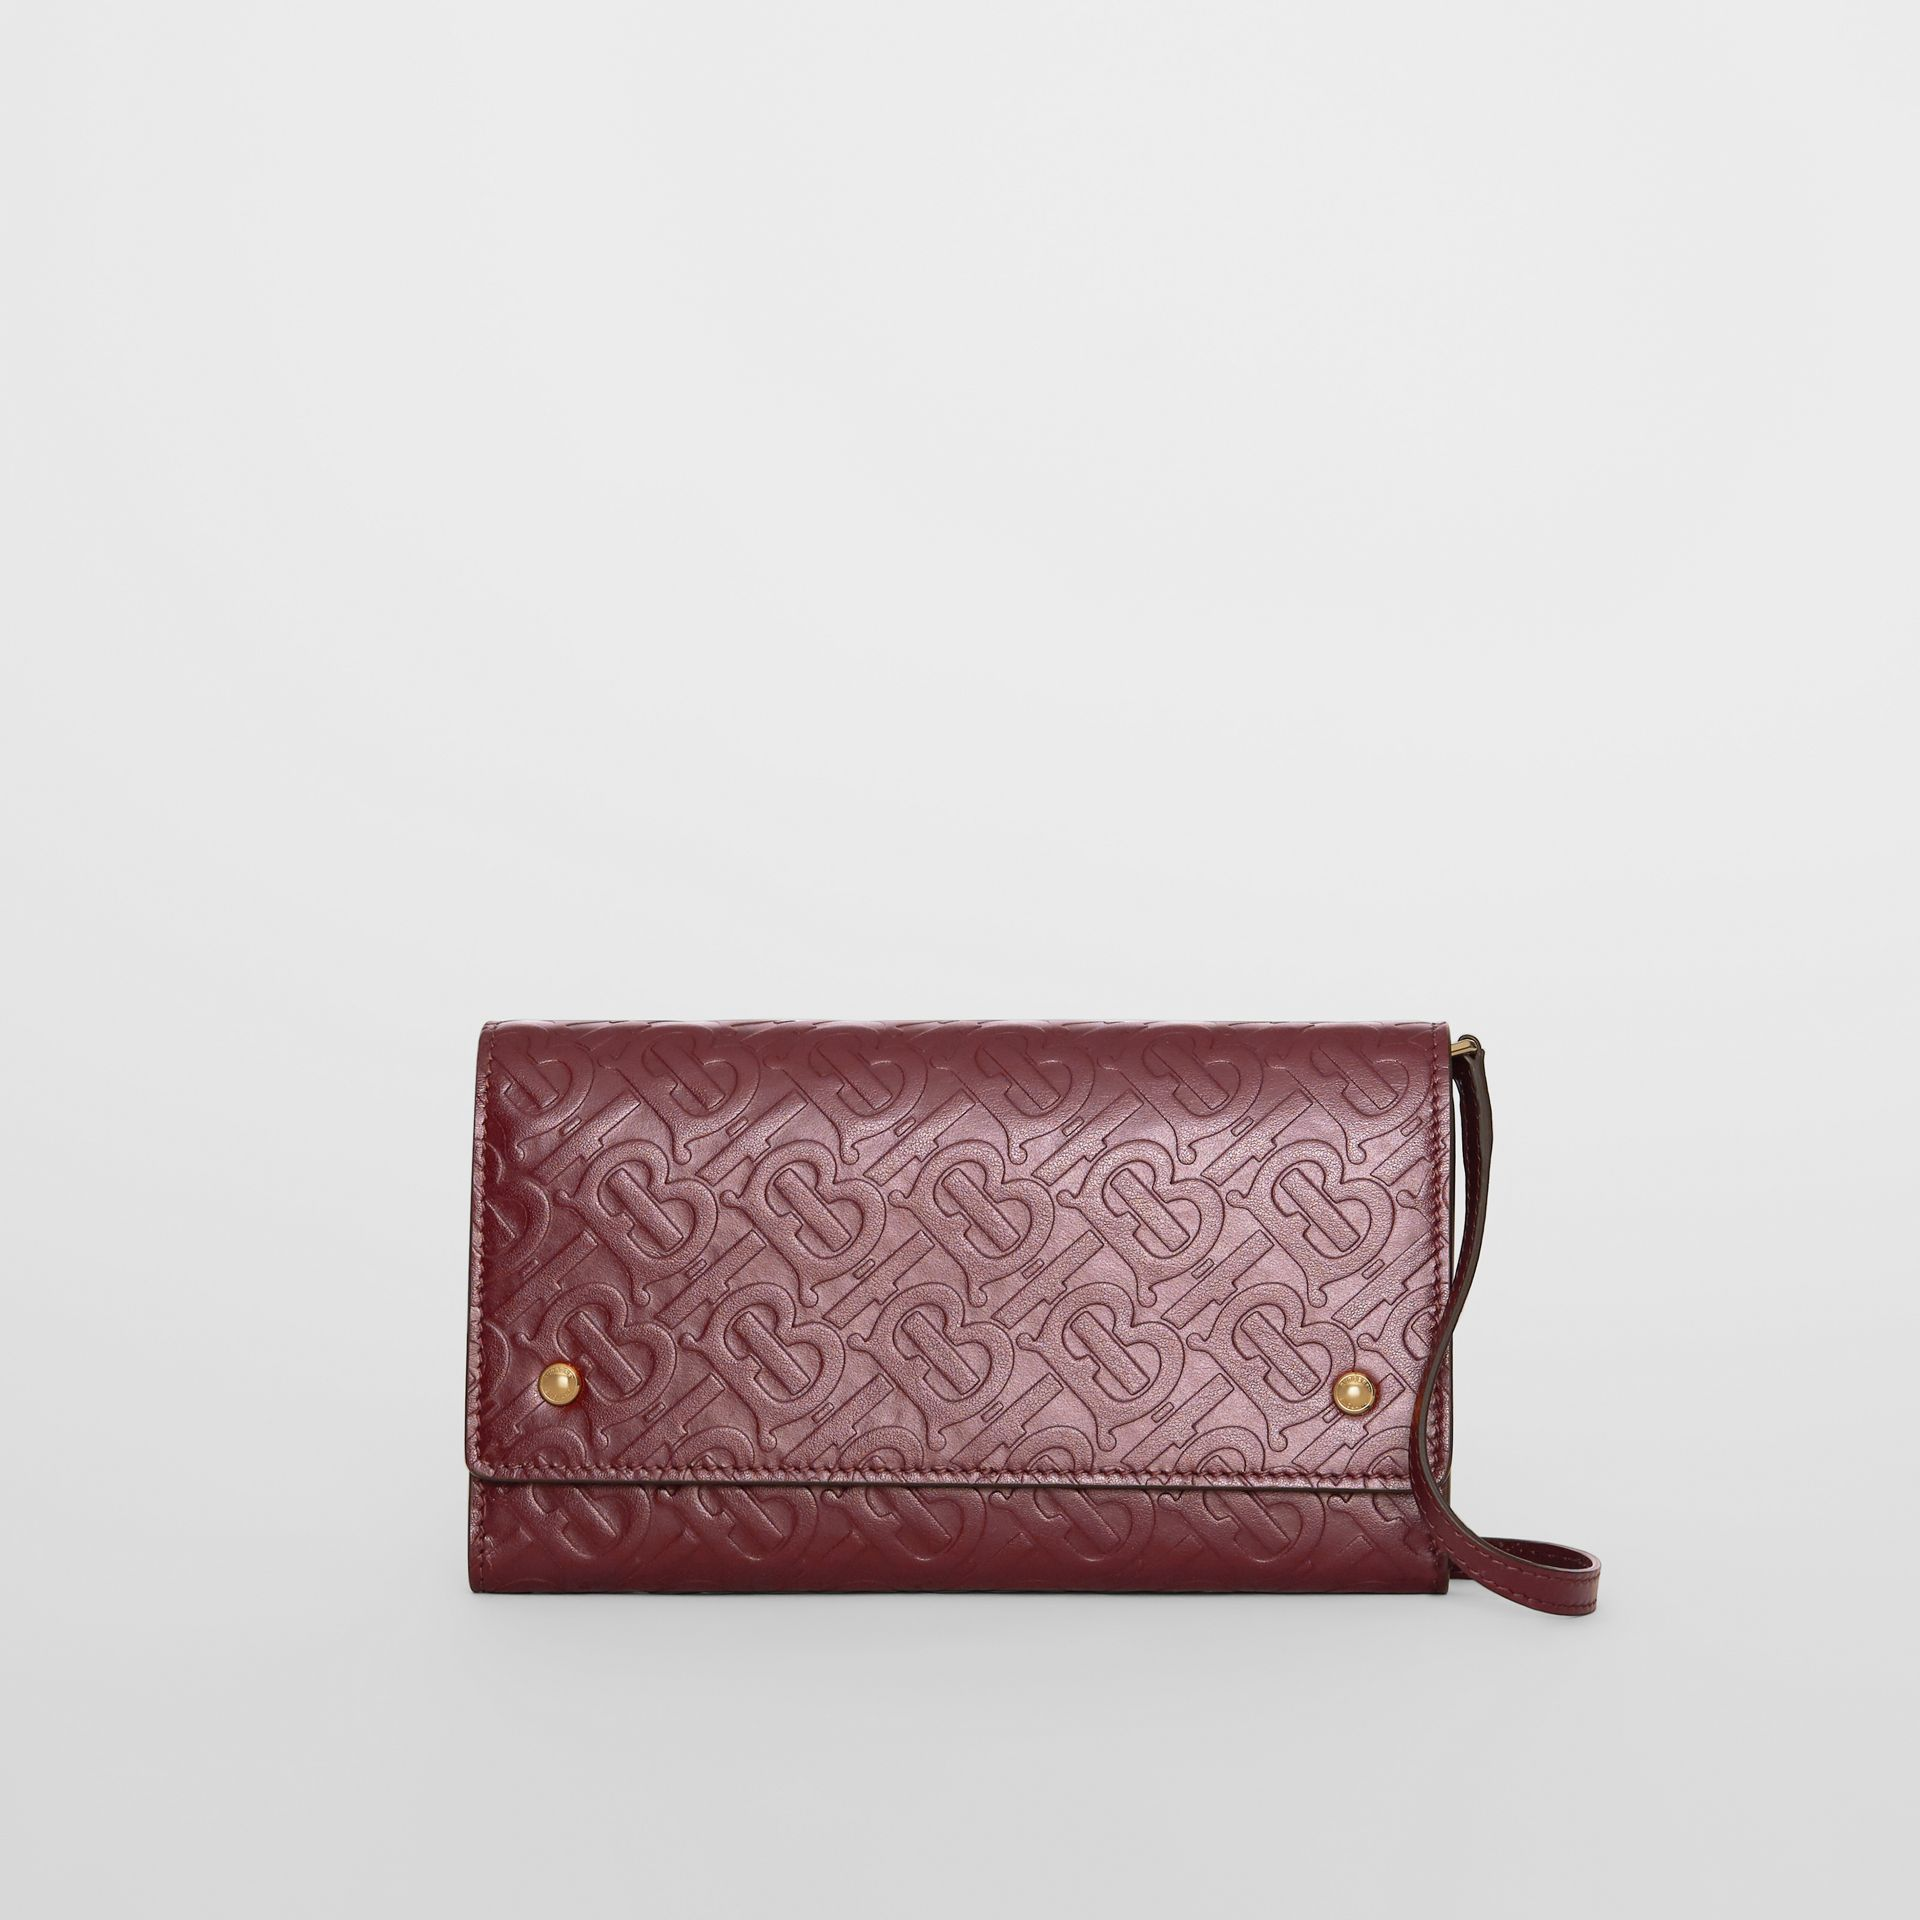 Monogram Leather Wallet with Detachable Strap in Oxblood - Women | Burberry Singapore - gallery image 0